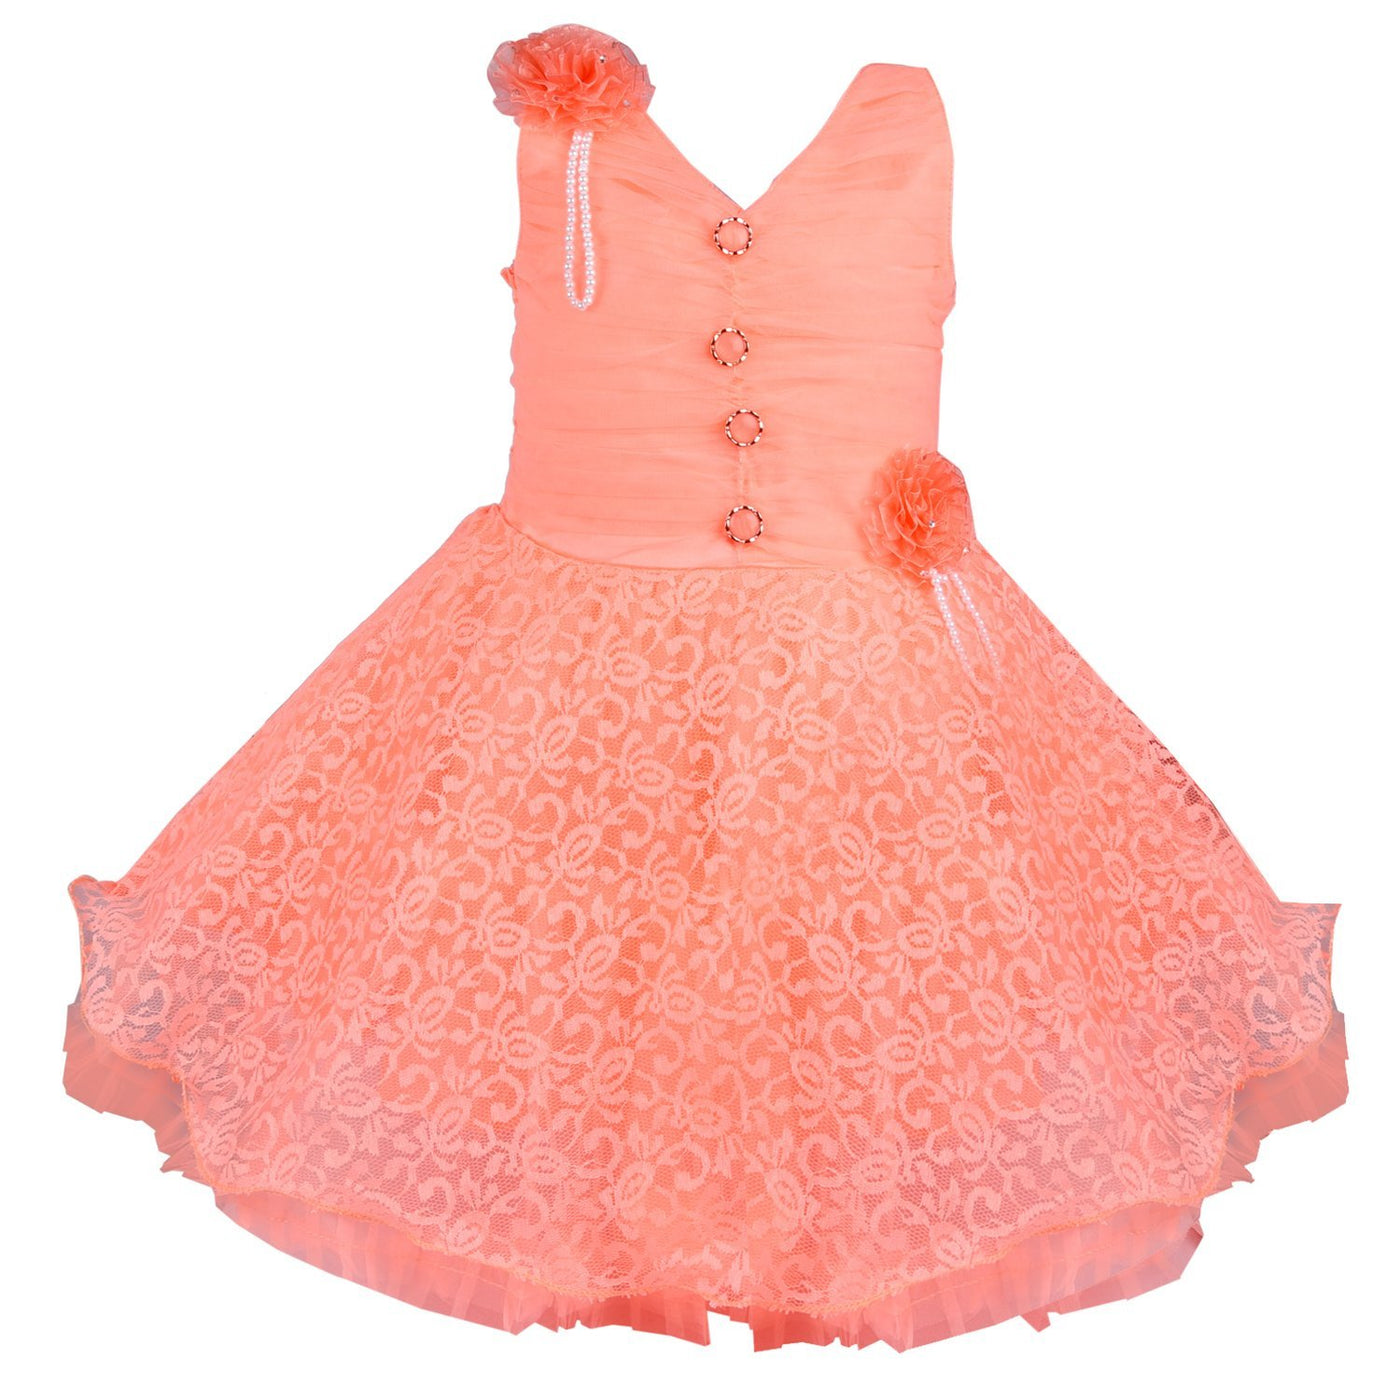 699099d9f Baby Girls Party Wear Frock Dress DN fr1031pch - Wish Karo Dresses ...